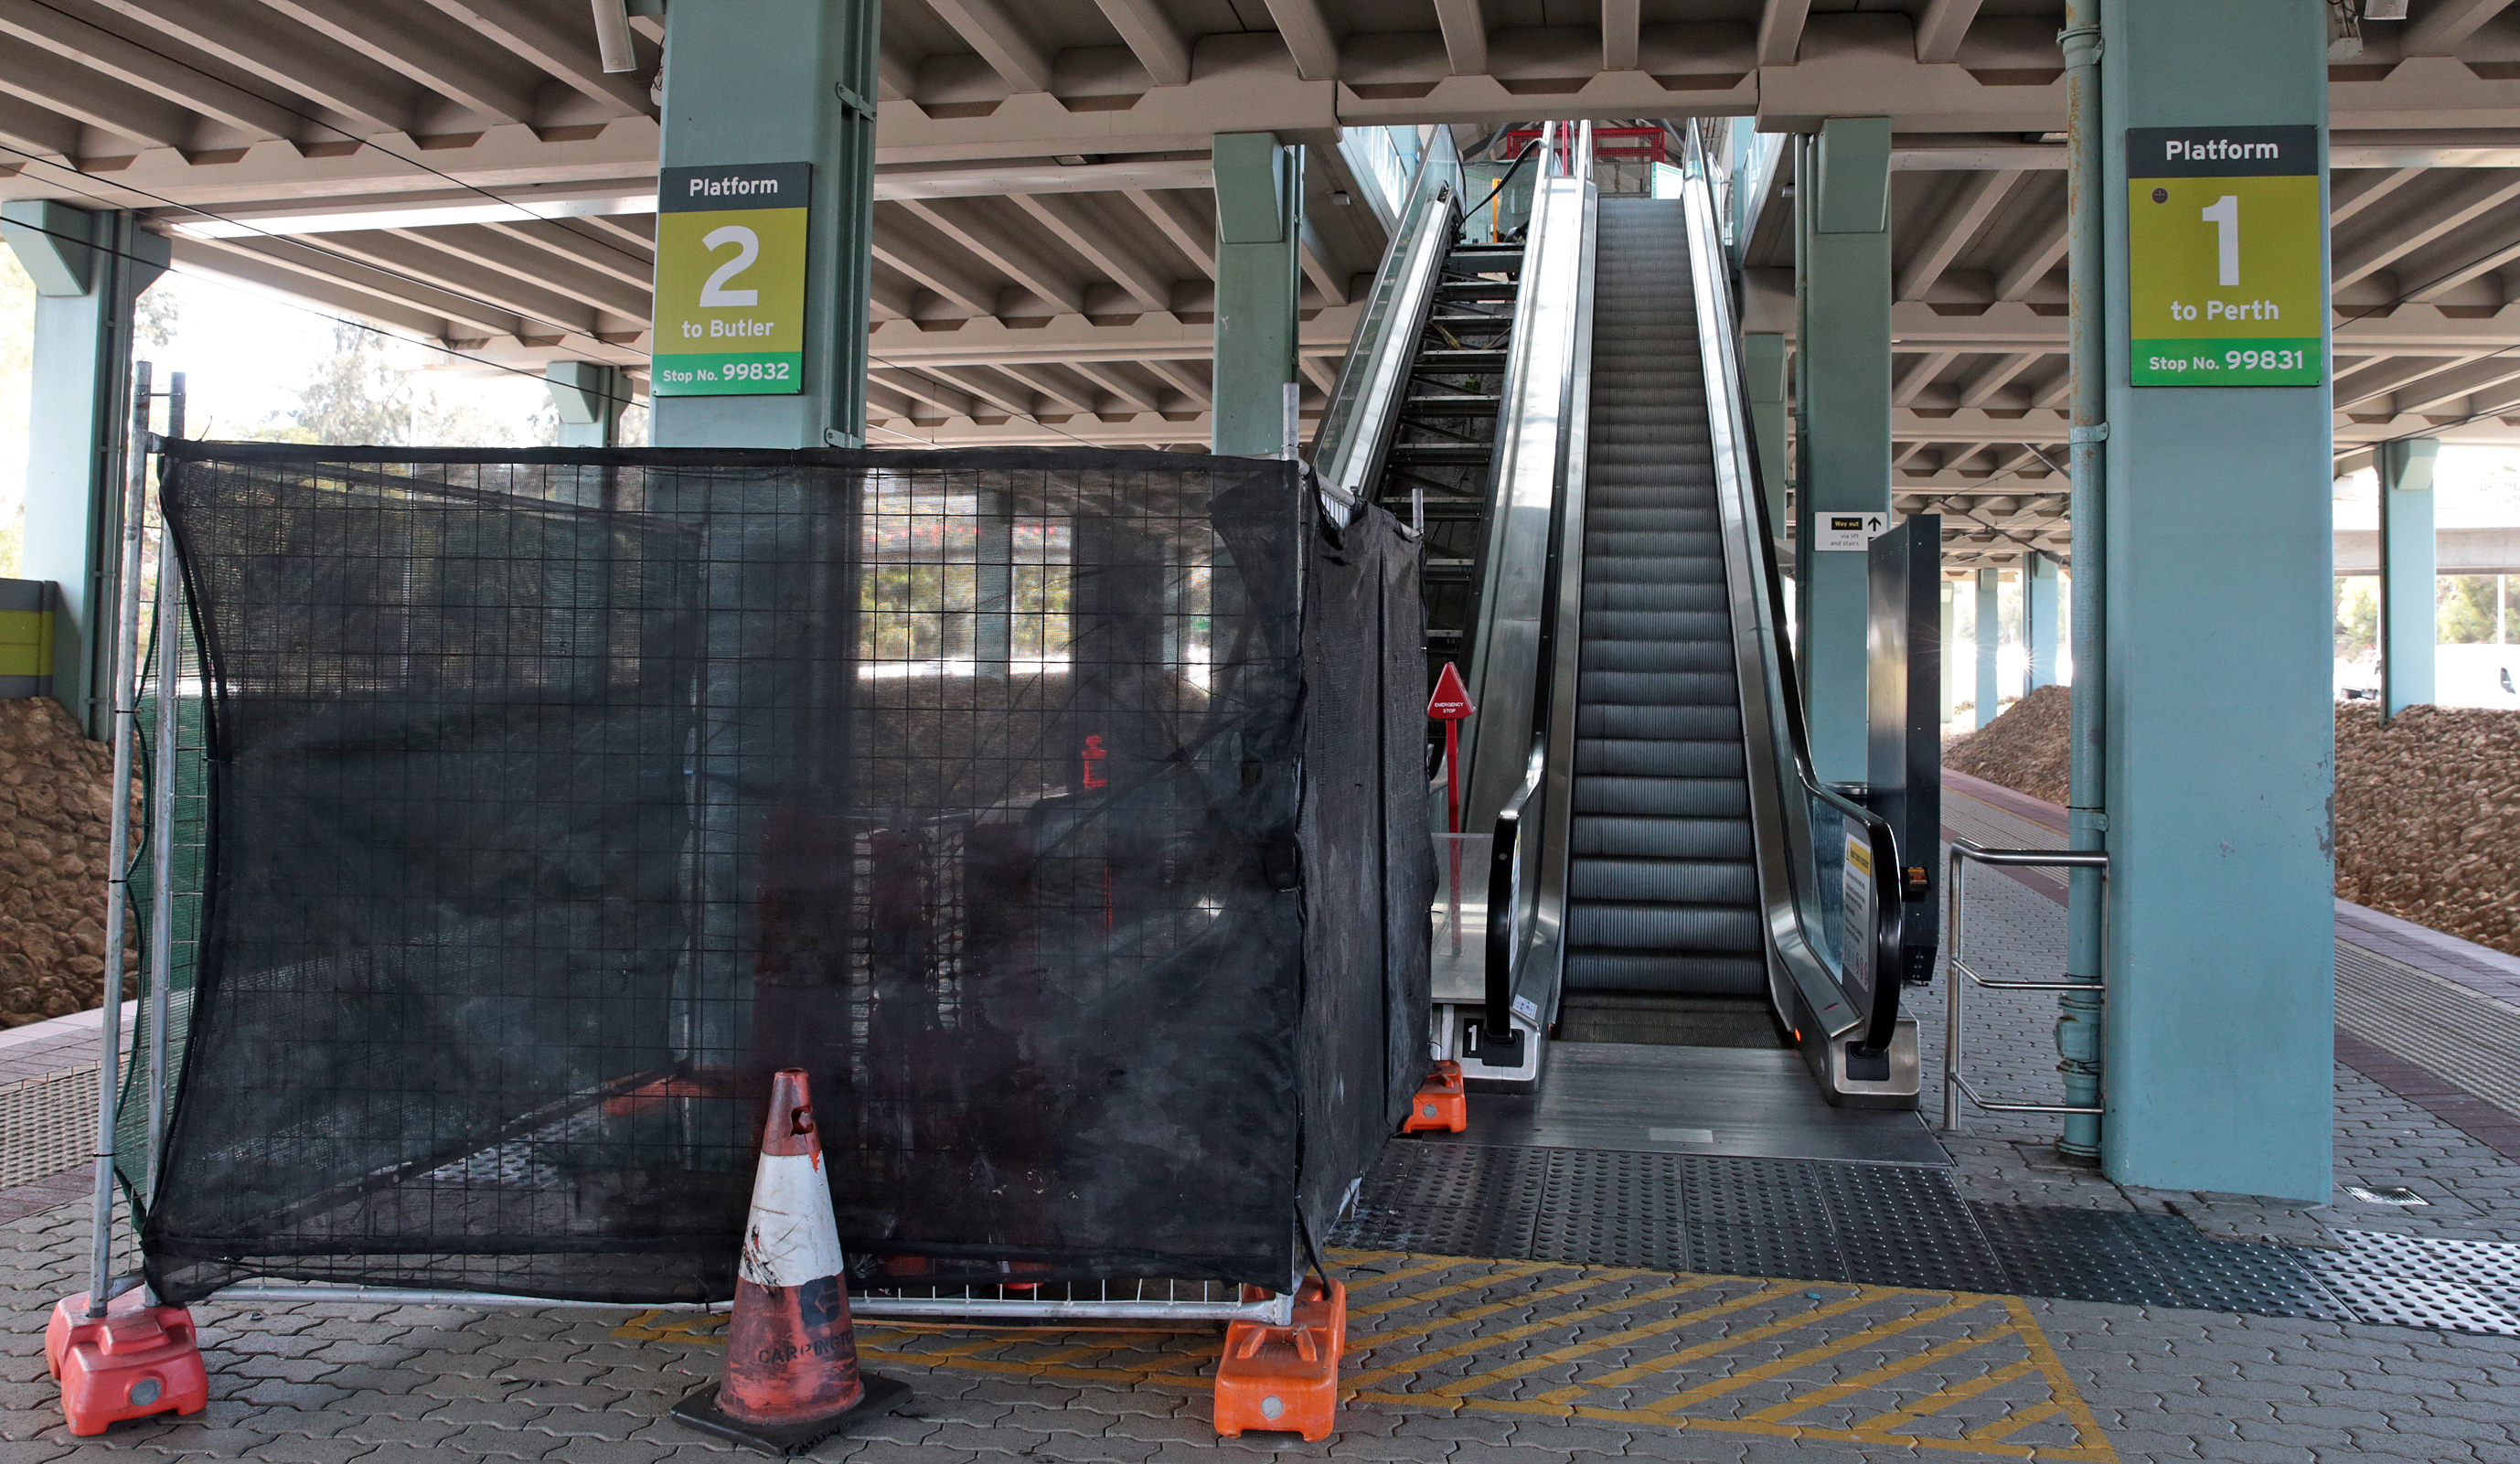 The broken escalator at Warwick train station. Picture: Martin Kennealey d470105